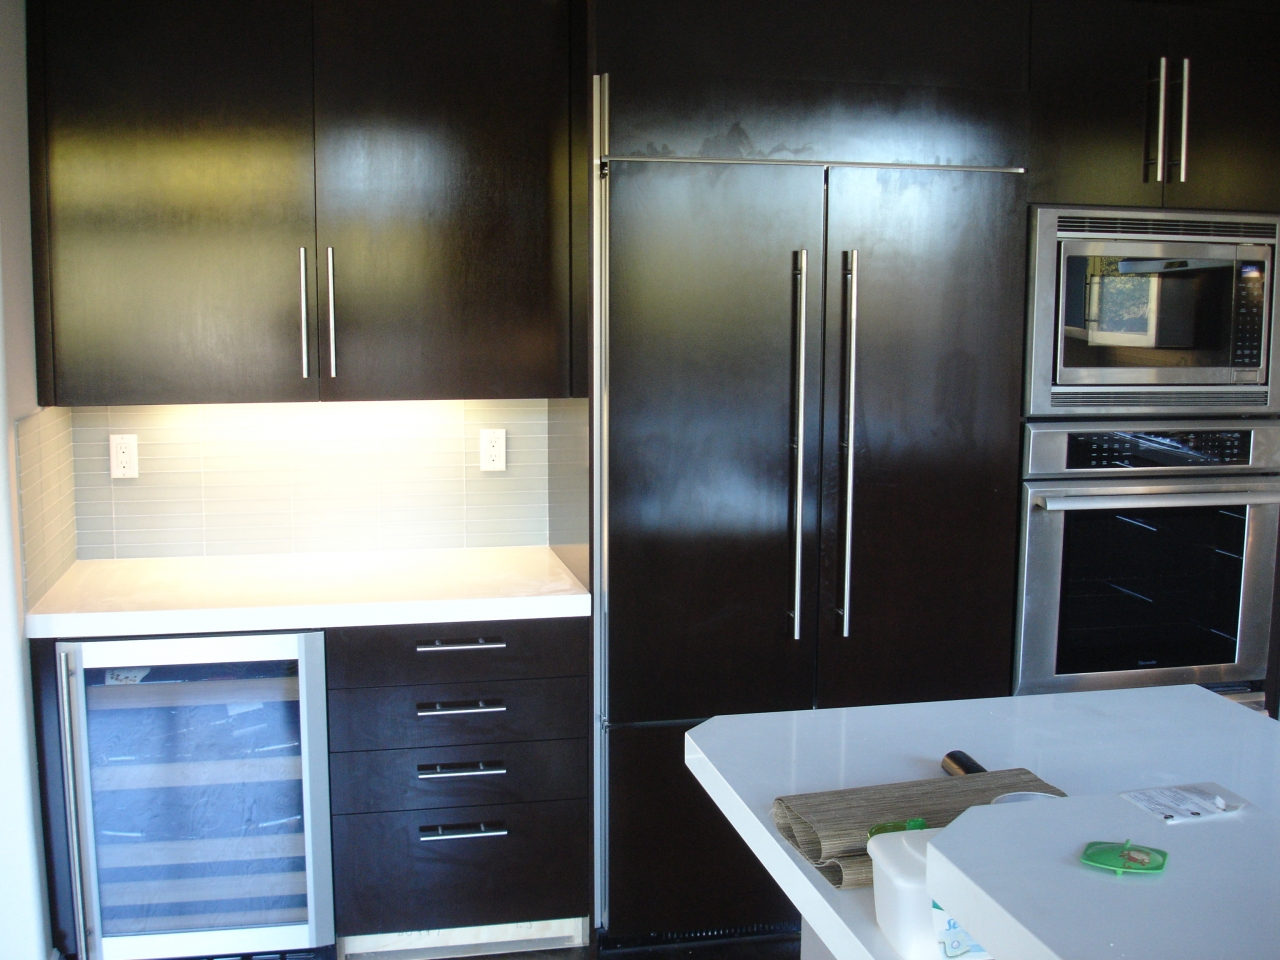 Contemporary Cabinet Doors With Oversized Pulls